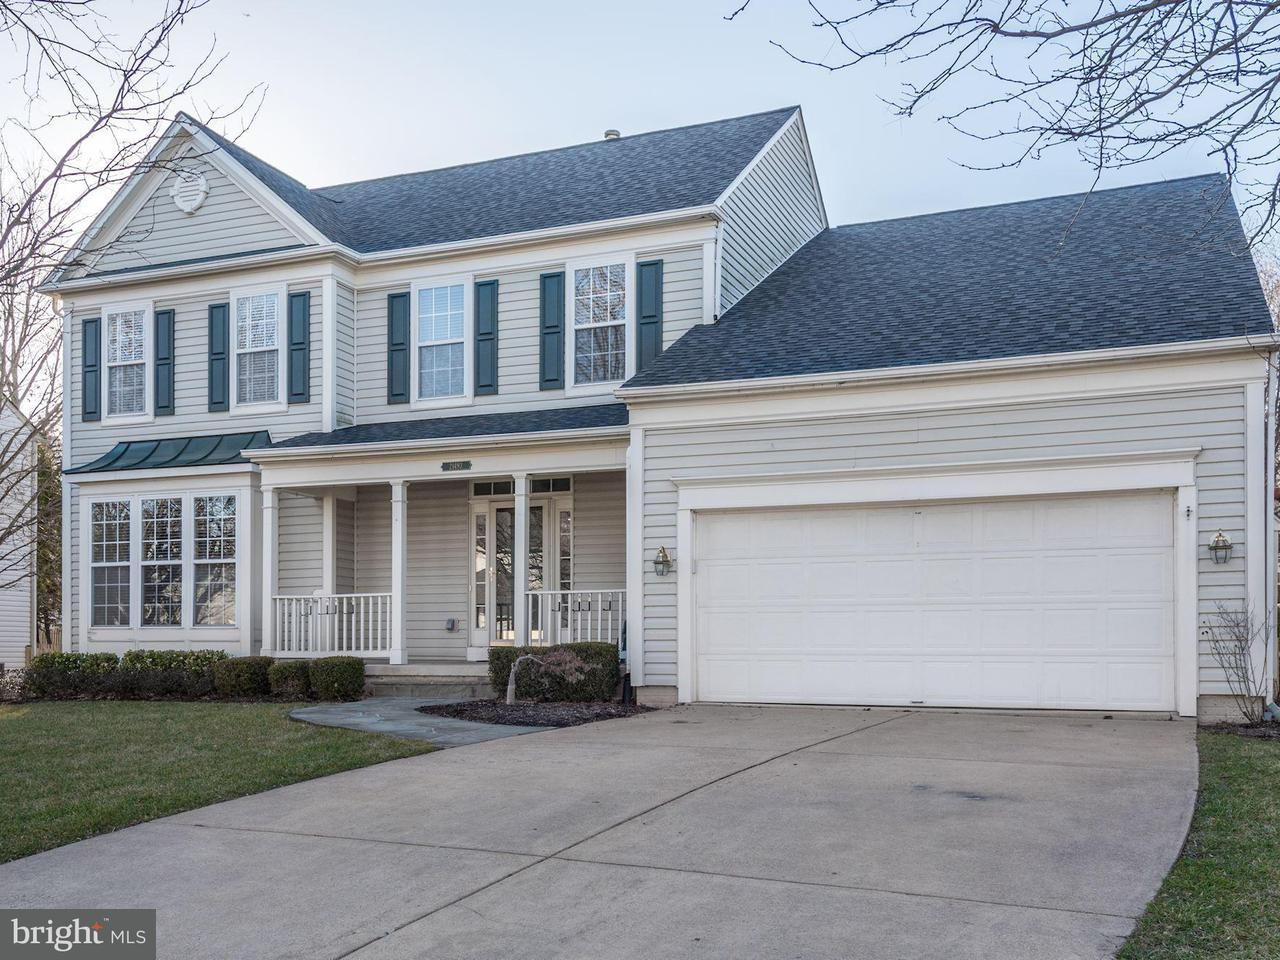 Single Family Home for Sale at 21493 Hearthstone Court 21493 Hearthstone Court Broadlands, Virginia 20148 United States